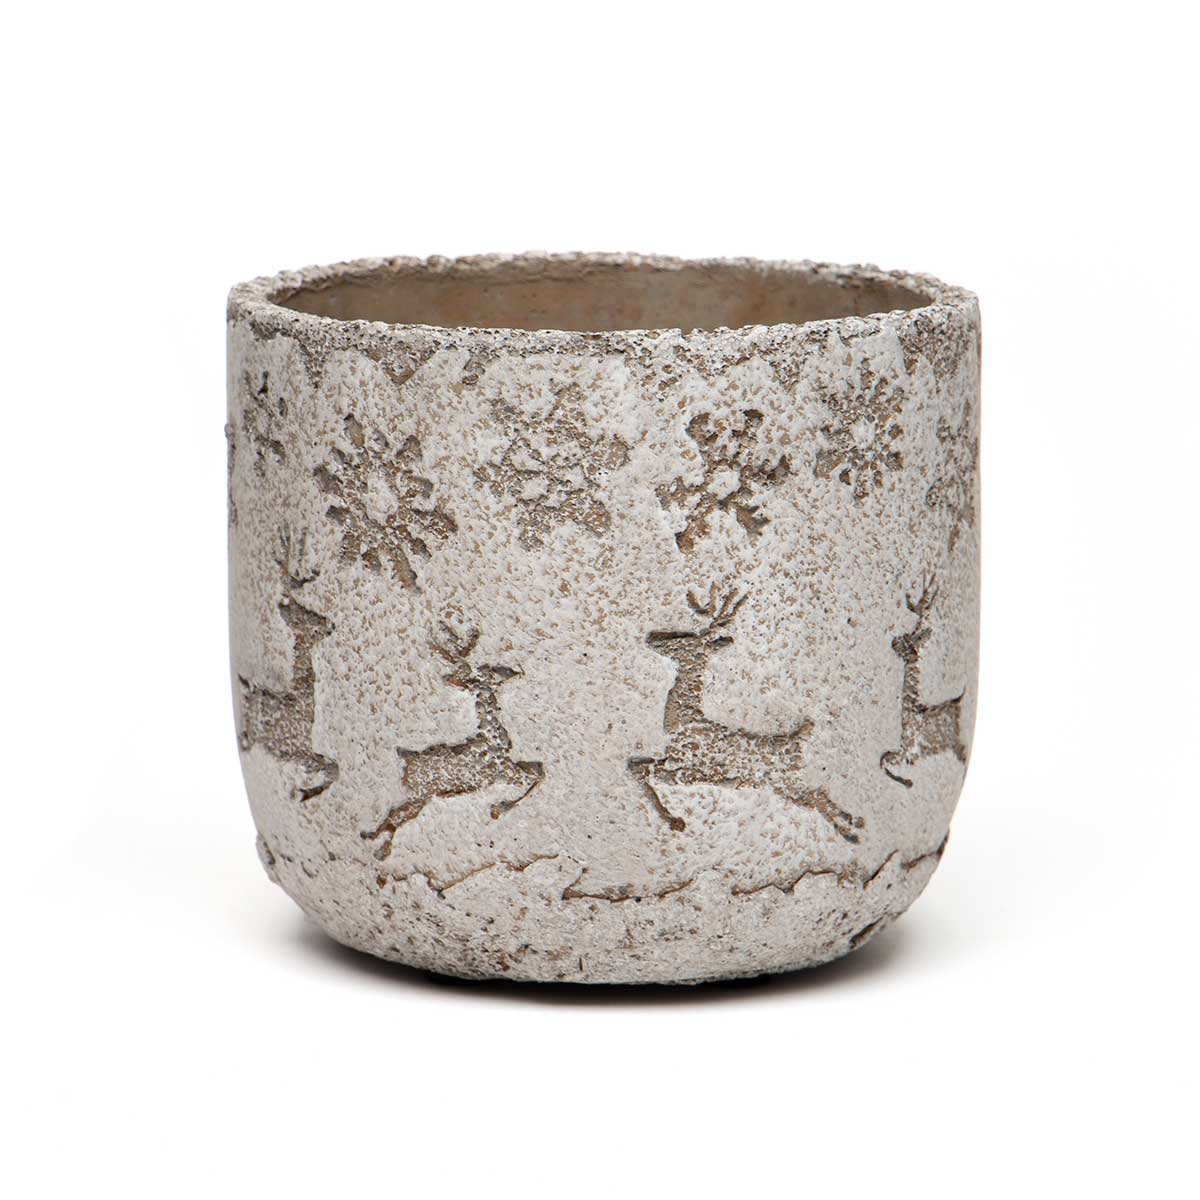 FLYING REINDEER CONCRETE POT BROWN/WHITE WITH